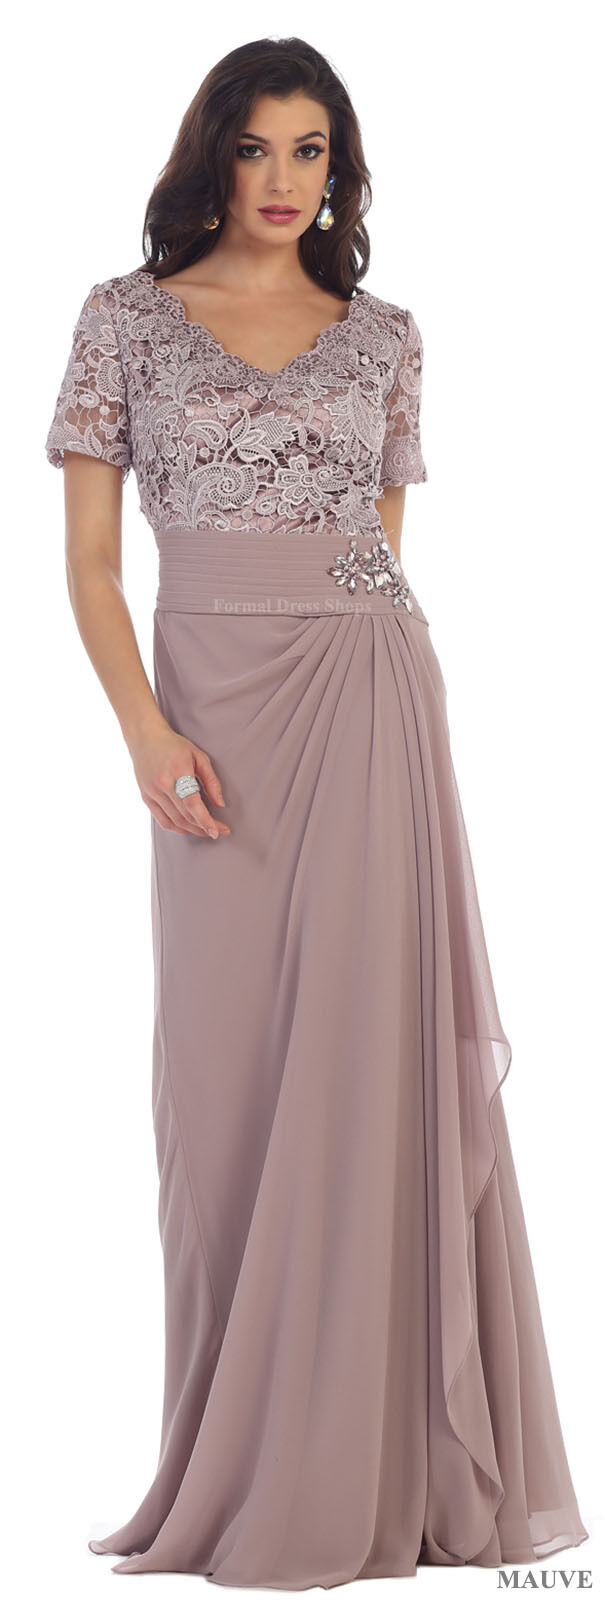 DESIGNER Short Sleeve Evening Gown Special Occasion Banquet Dress ...